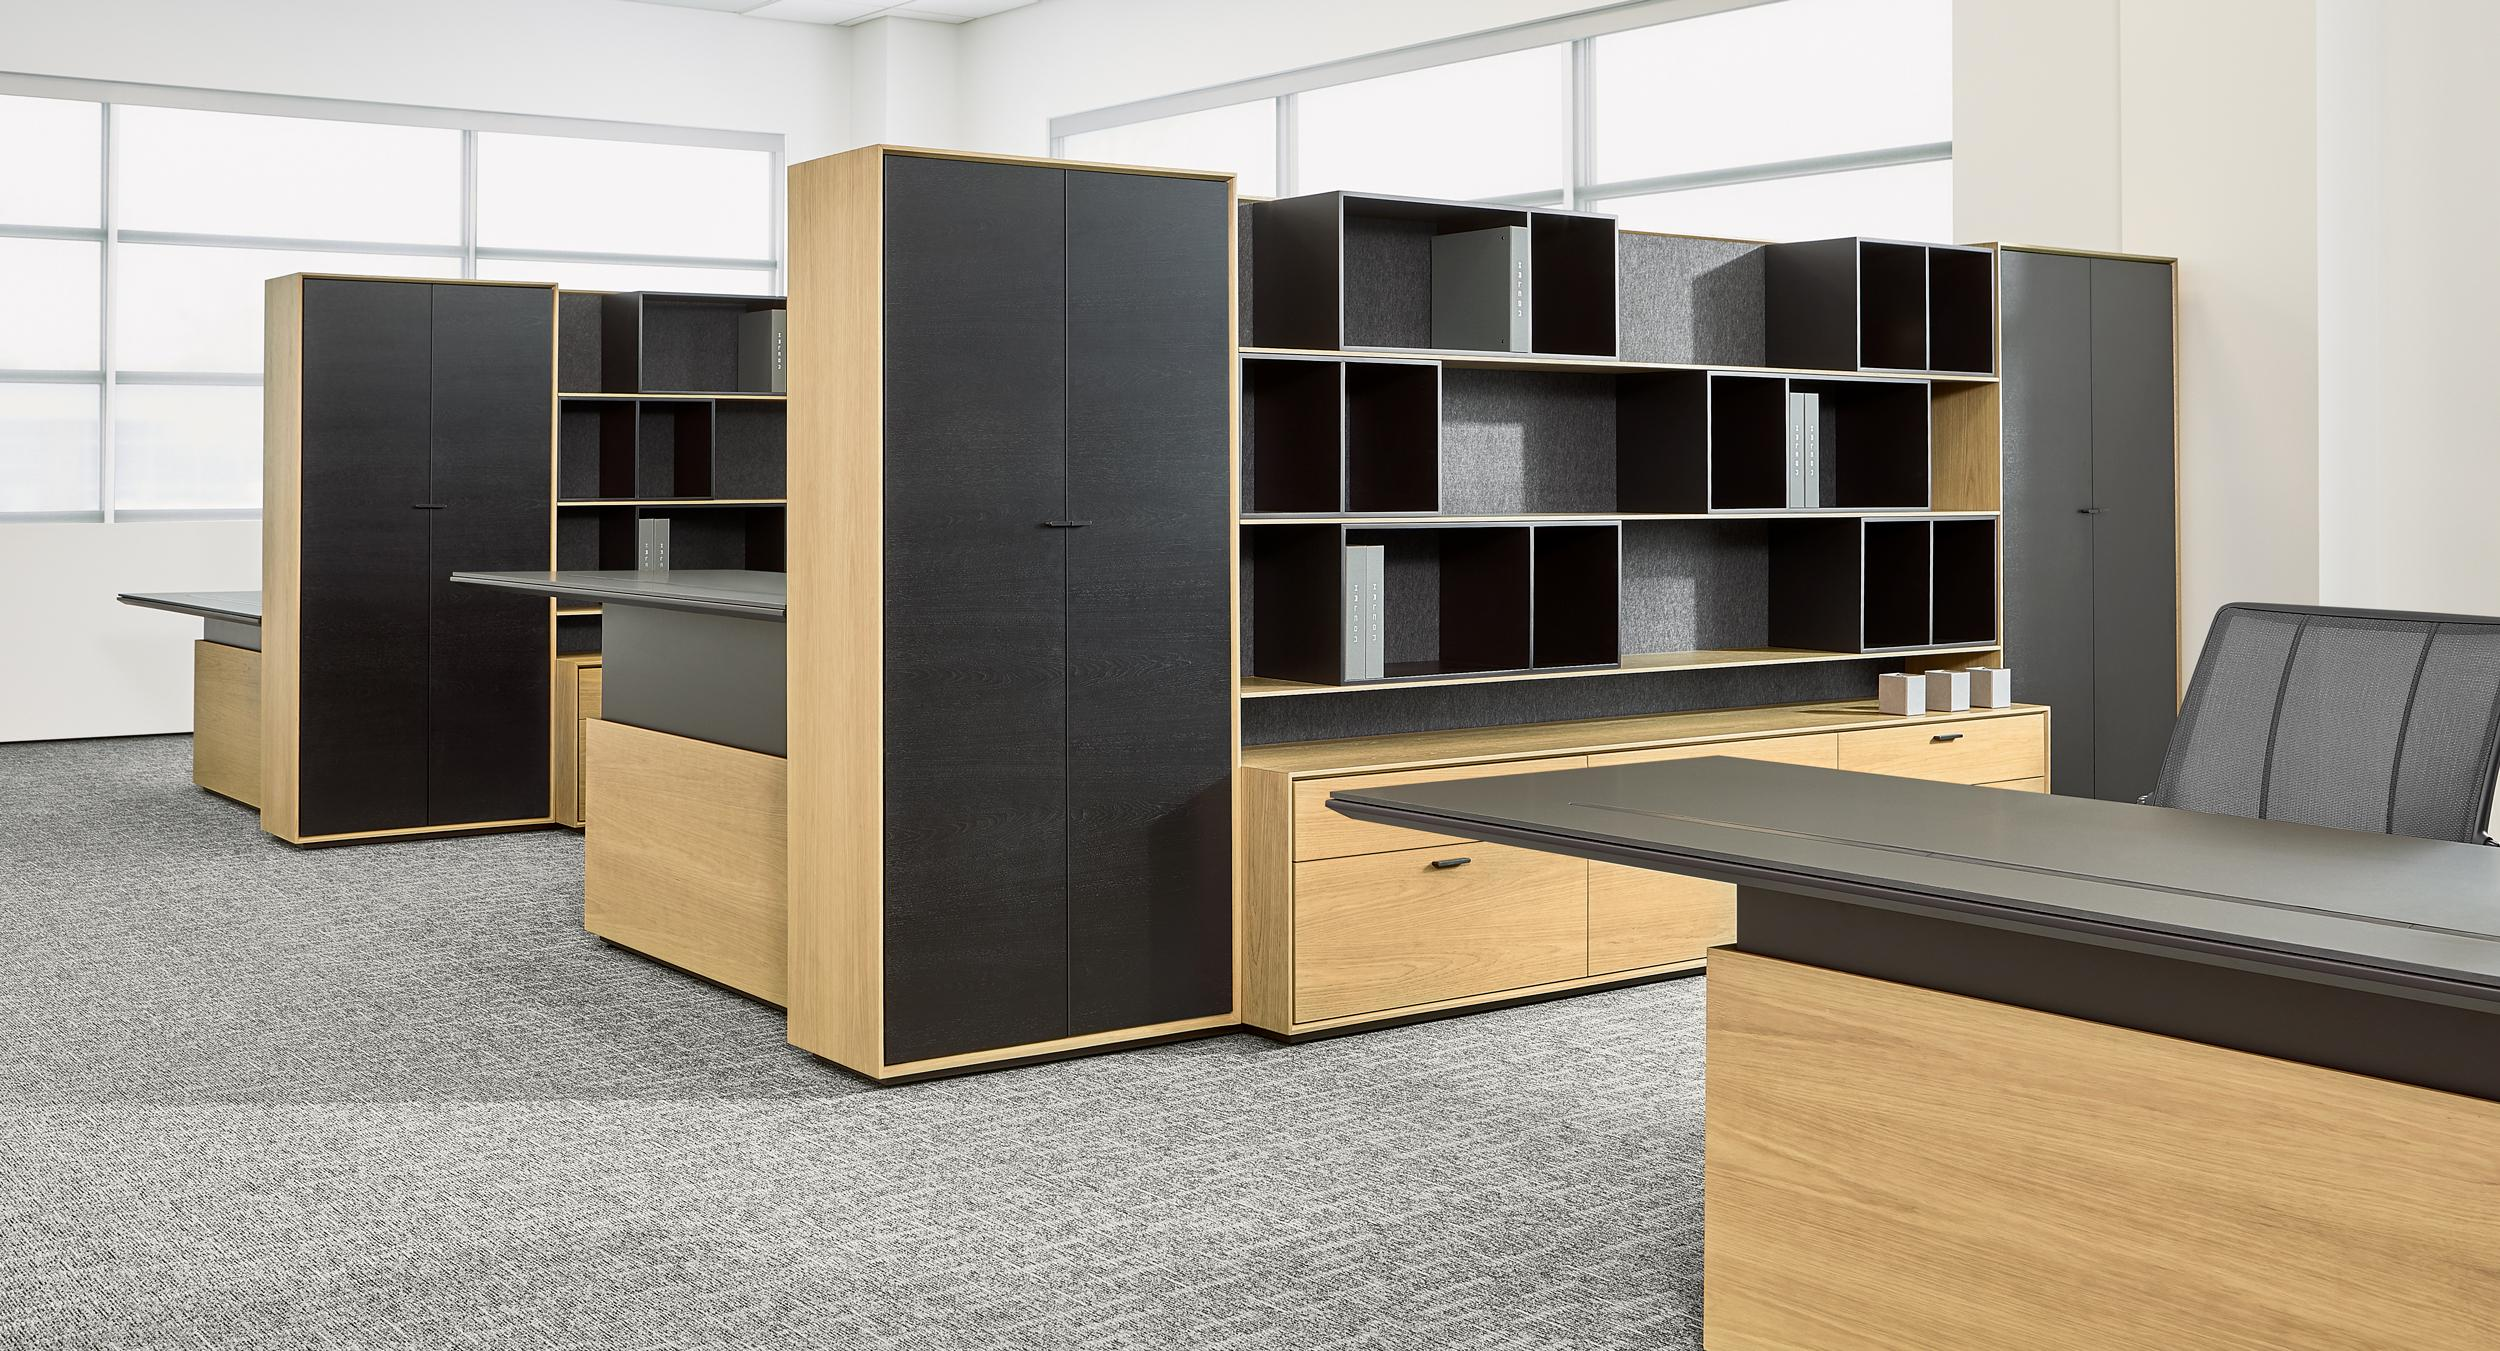 HALO Office is a total office solution for private office and open plan.